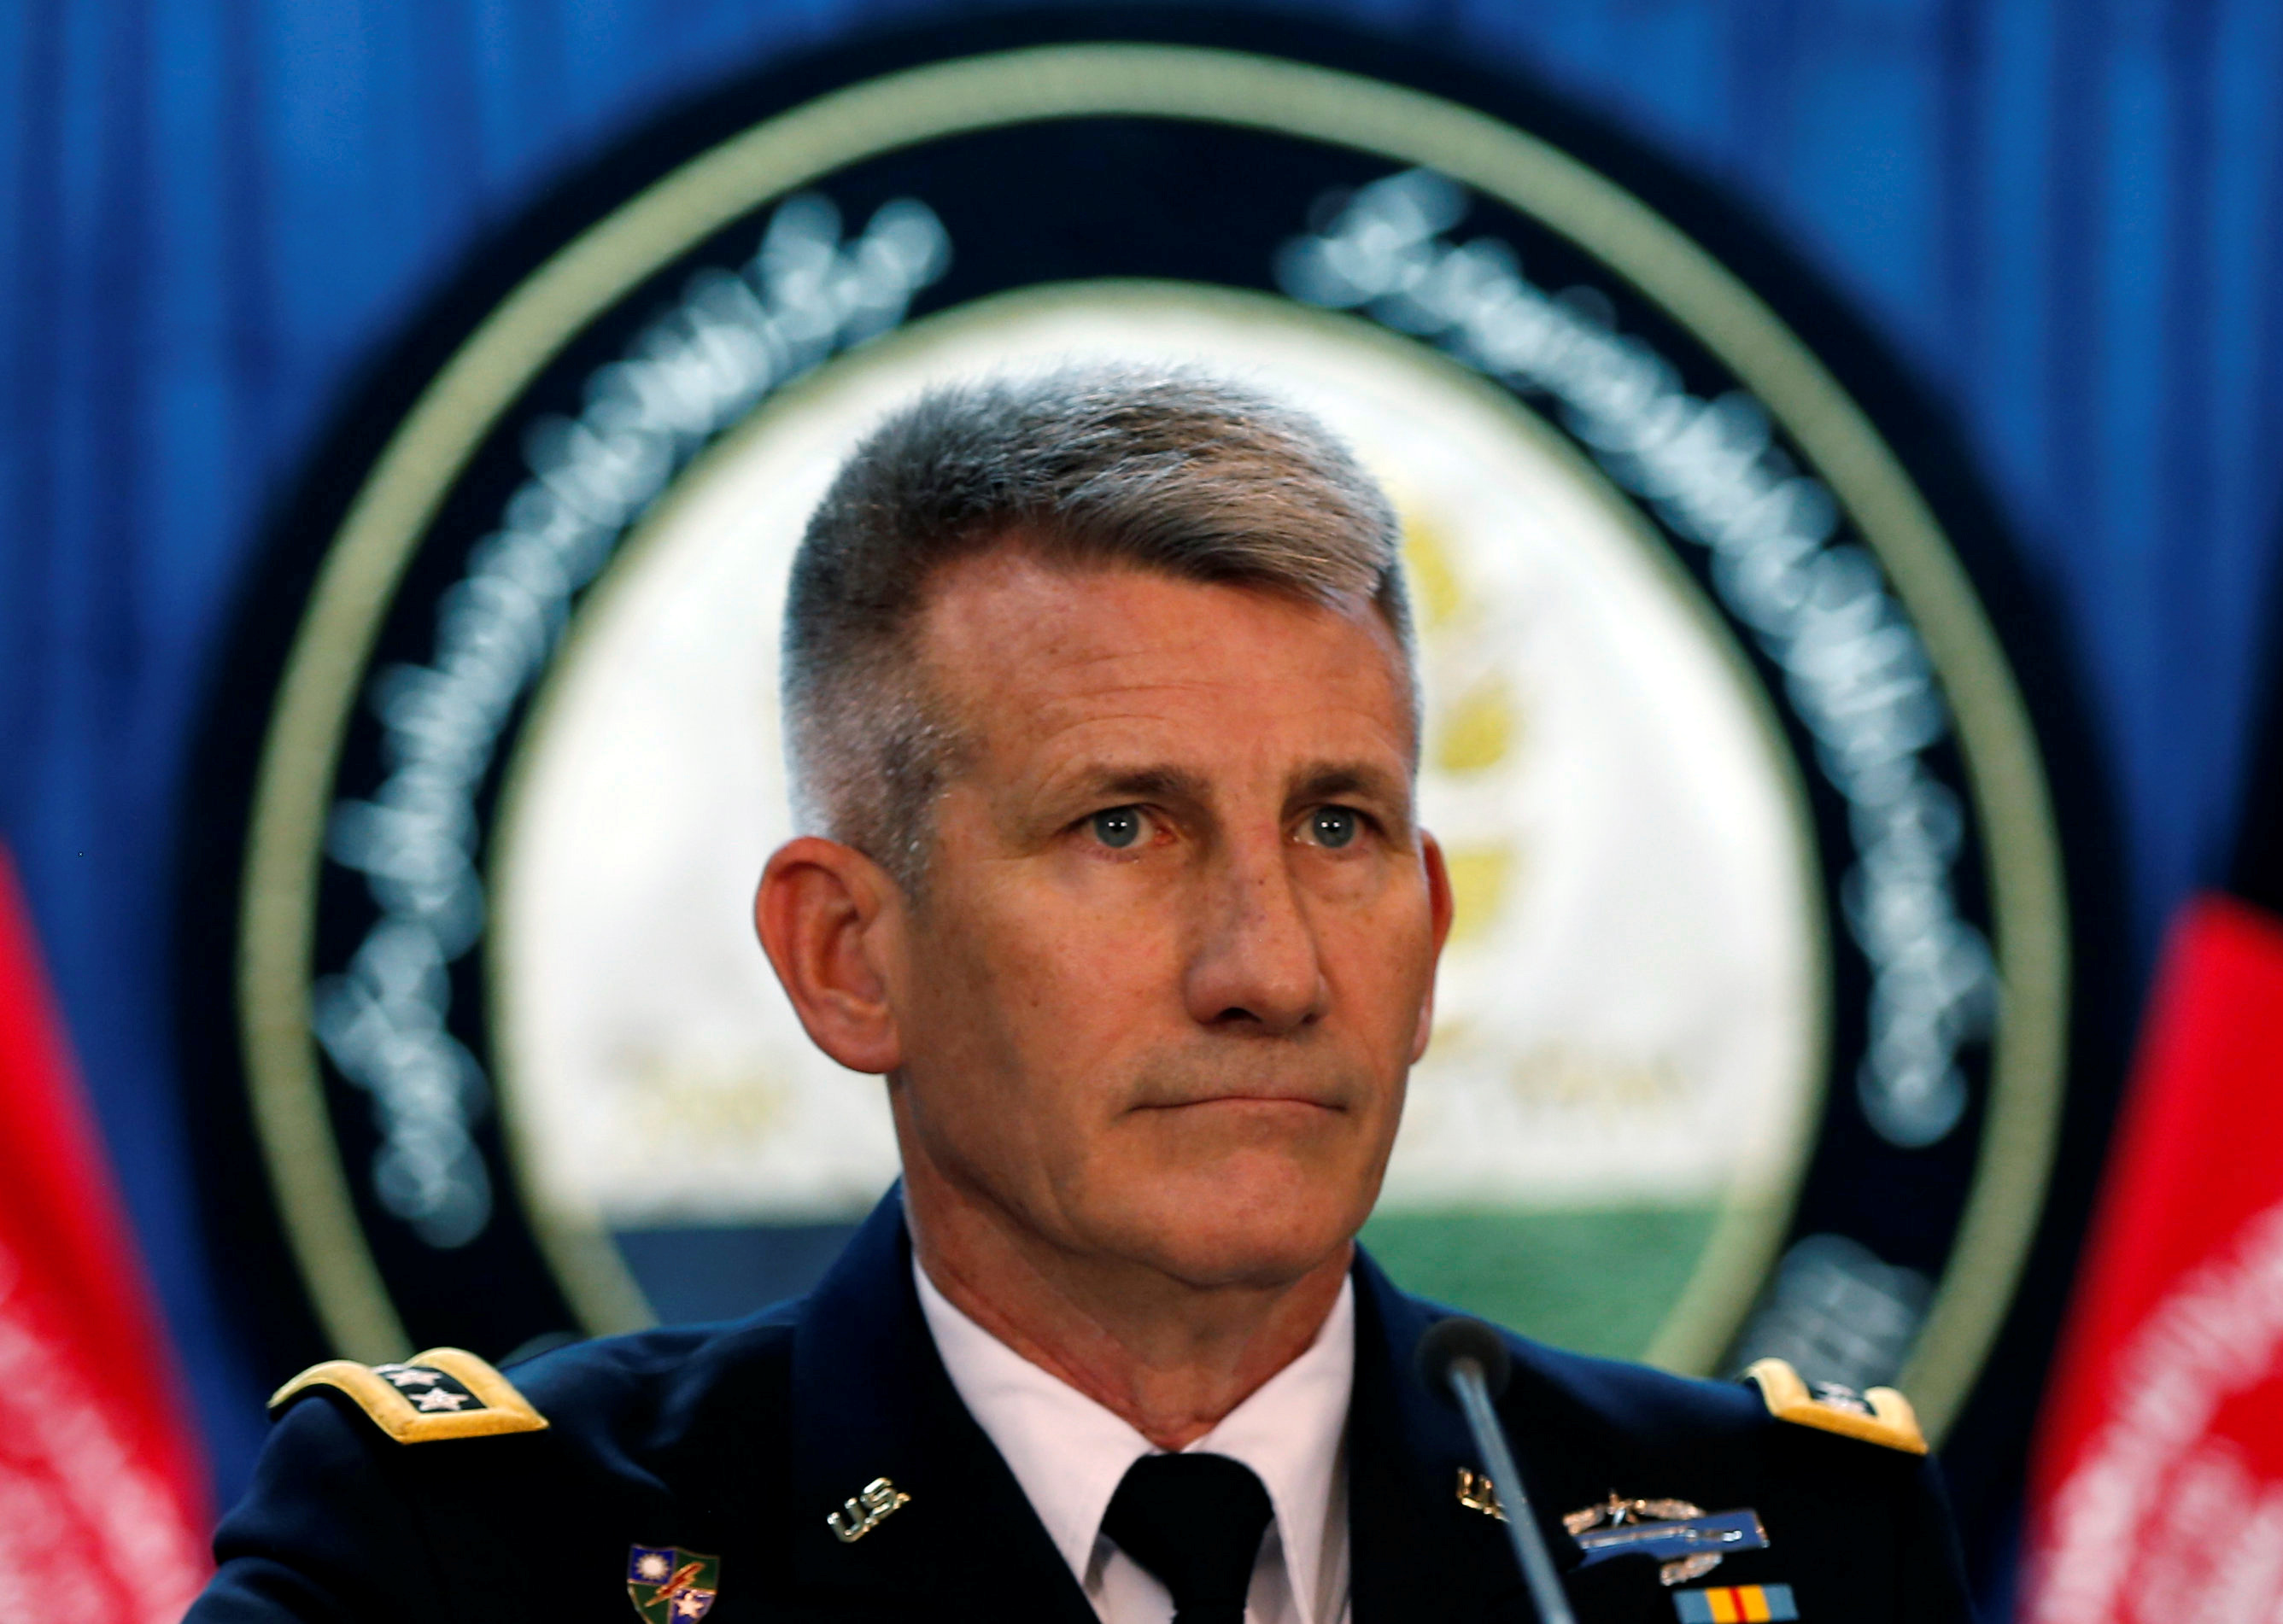 U.S. Army General John Nicholson, Commander of Resolute Support forces and U.S. forces in Afghanistan, speaks about the U.S. new strategy for Afghanistan during a news conference in Kabul, Afghanistan August 24, 2017.